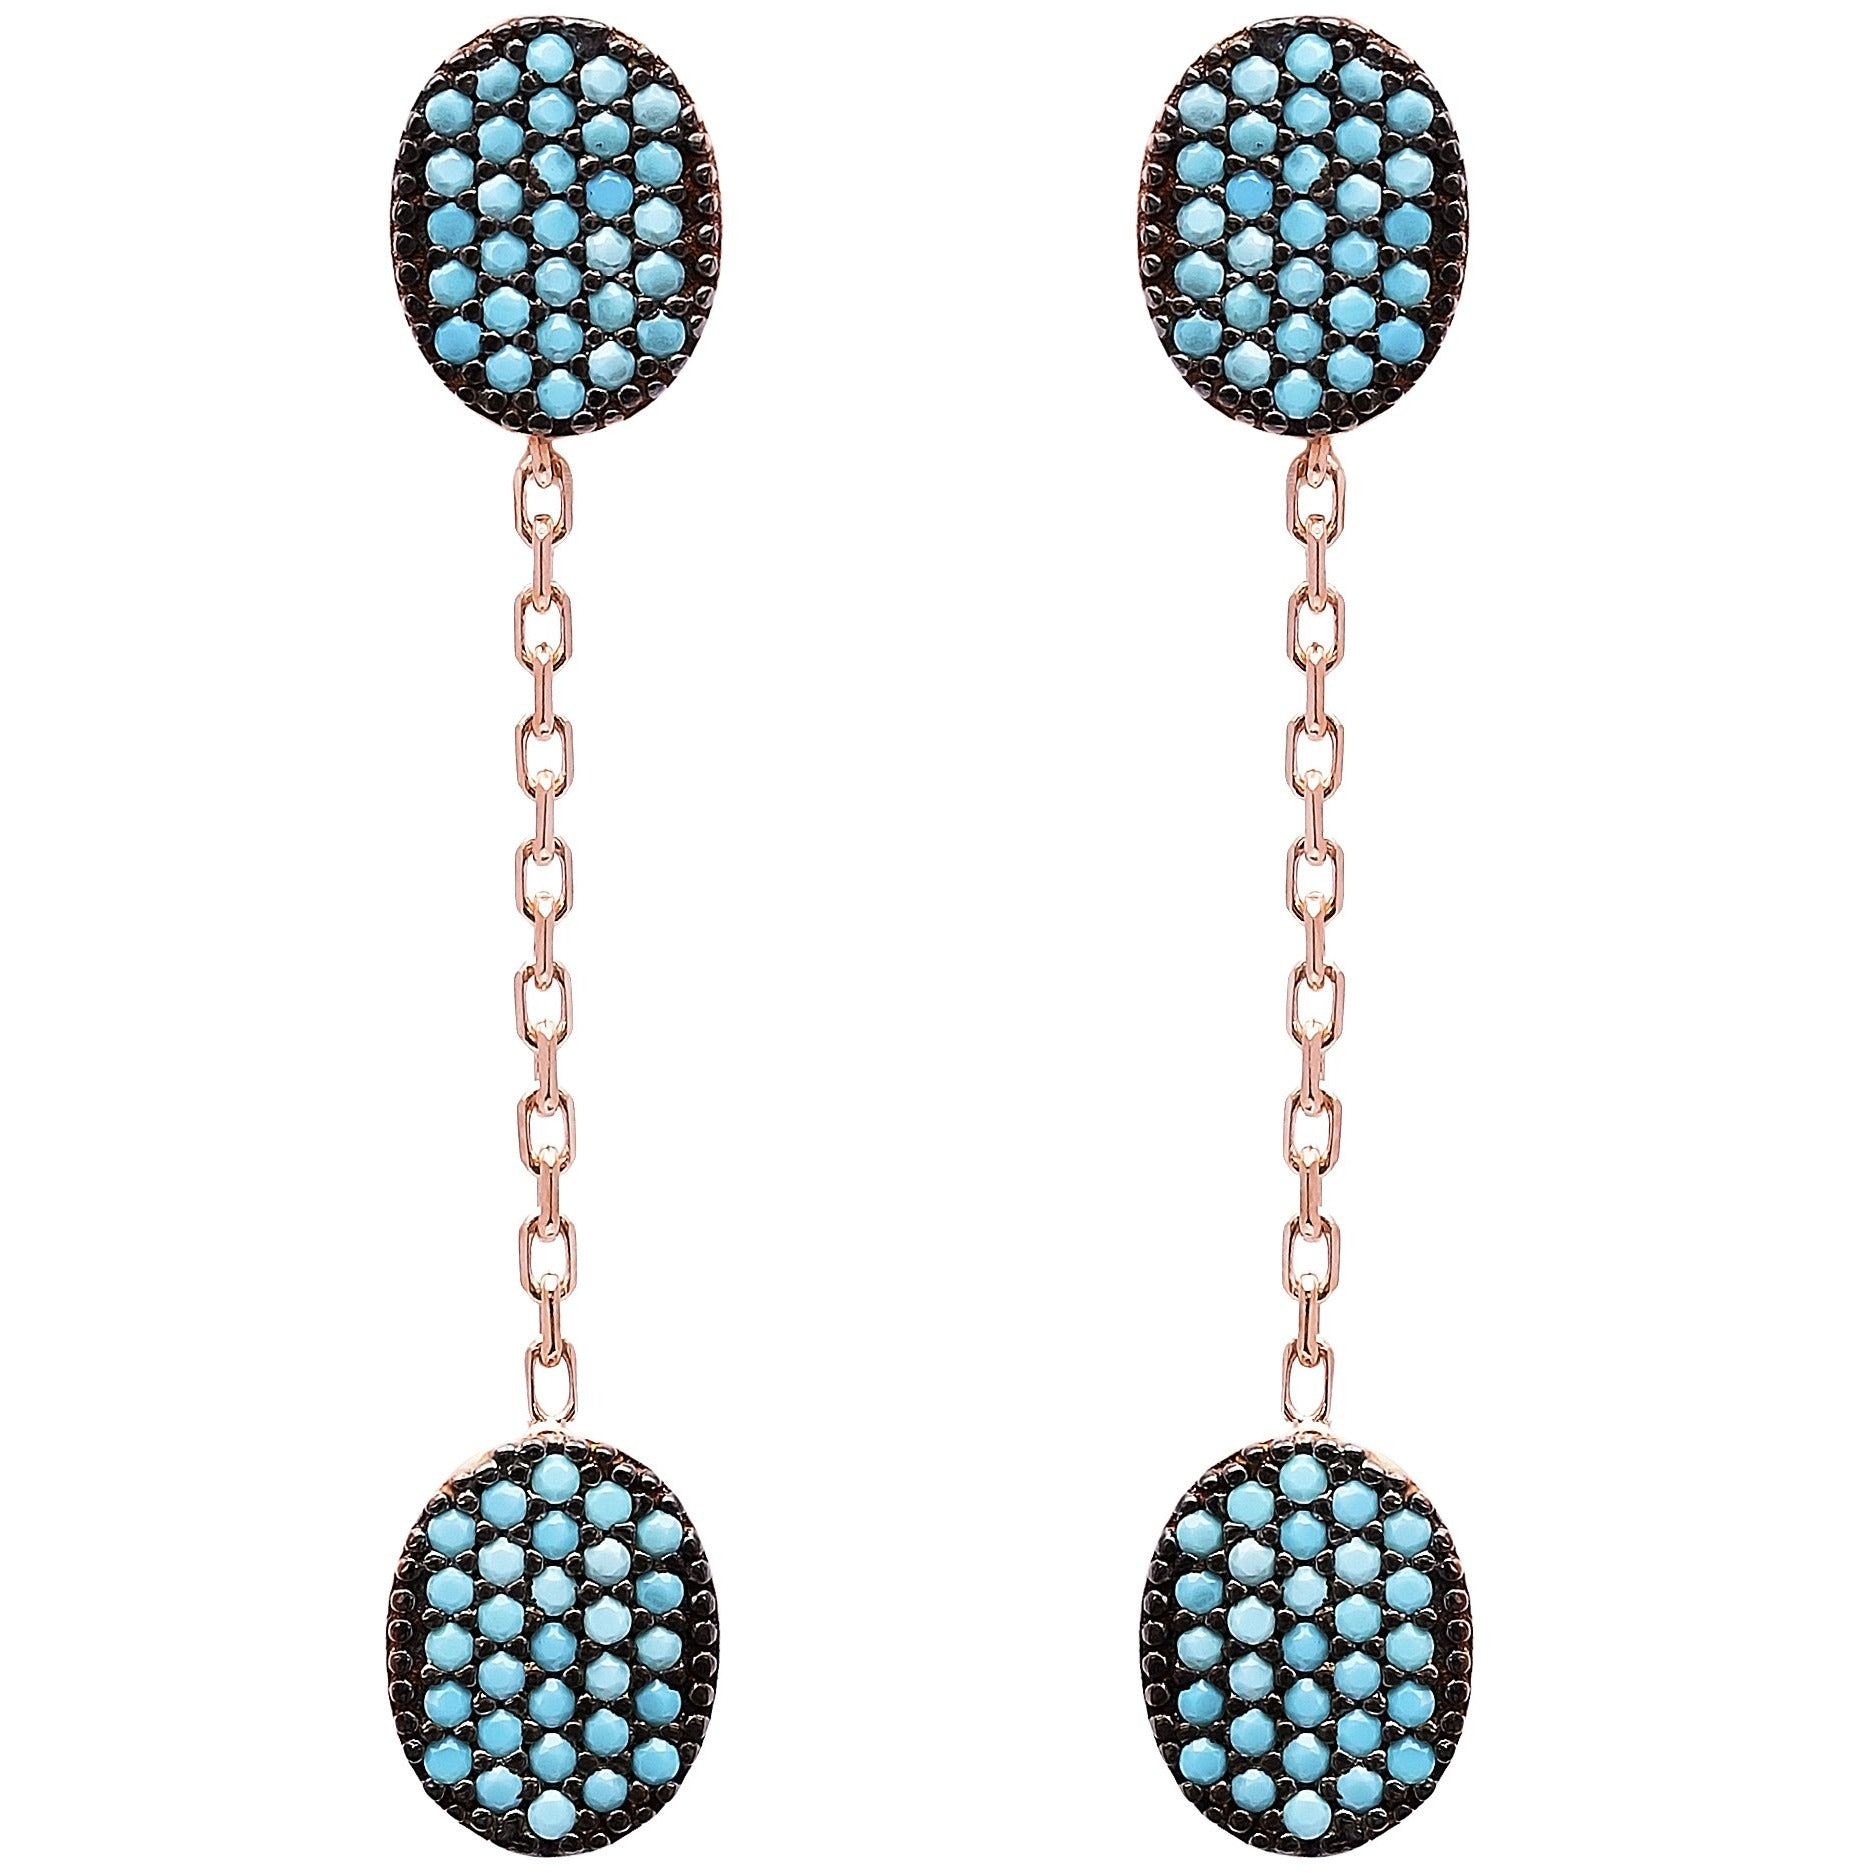 Dual Hanging Lapis Pave Set Earrings in Gold